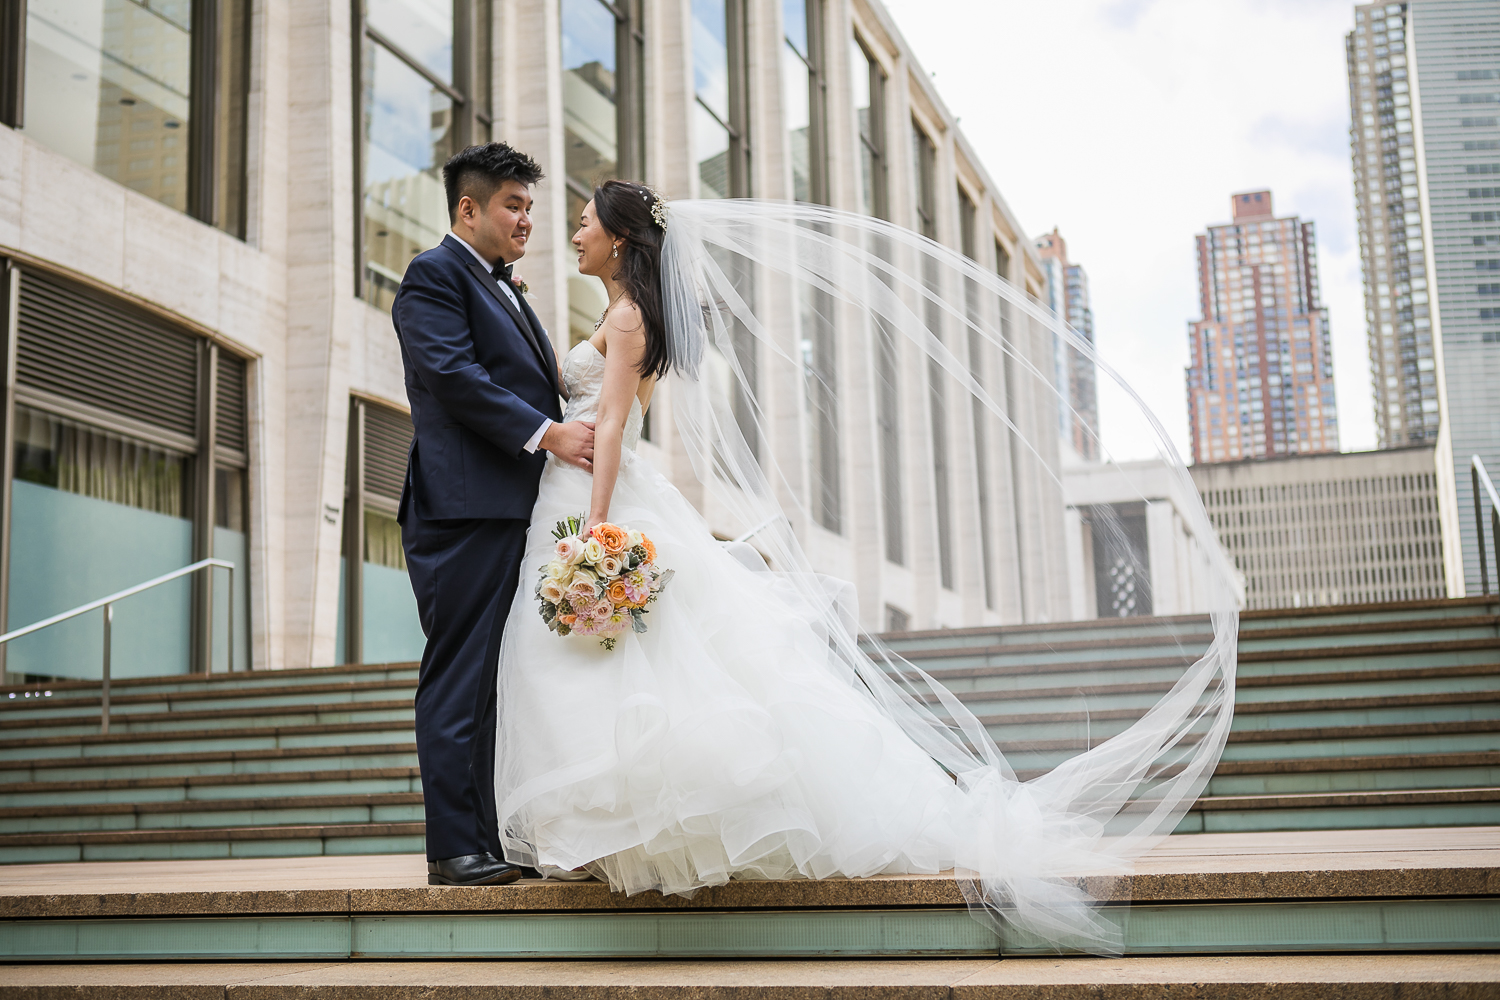 Wind blowing a bride's veil while posing for wedding portraits at Lincoln Center in New York City| Lincoln Center Wedding Photos | Jason and Susanna's Glam NYC Elopement